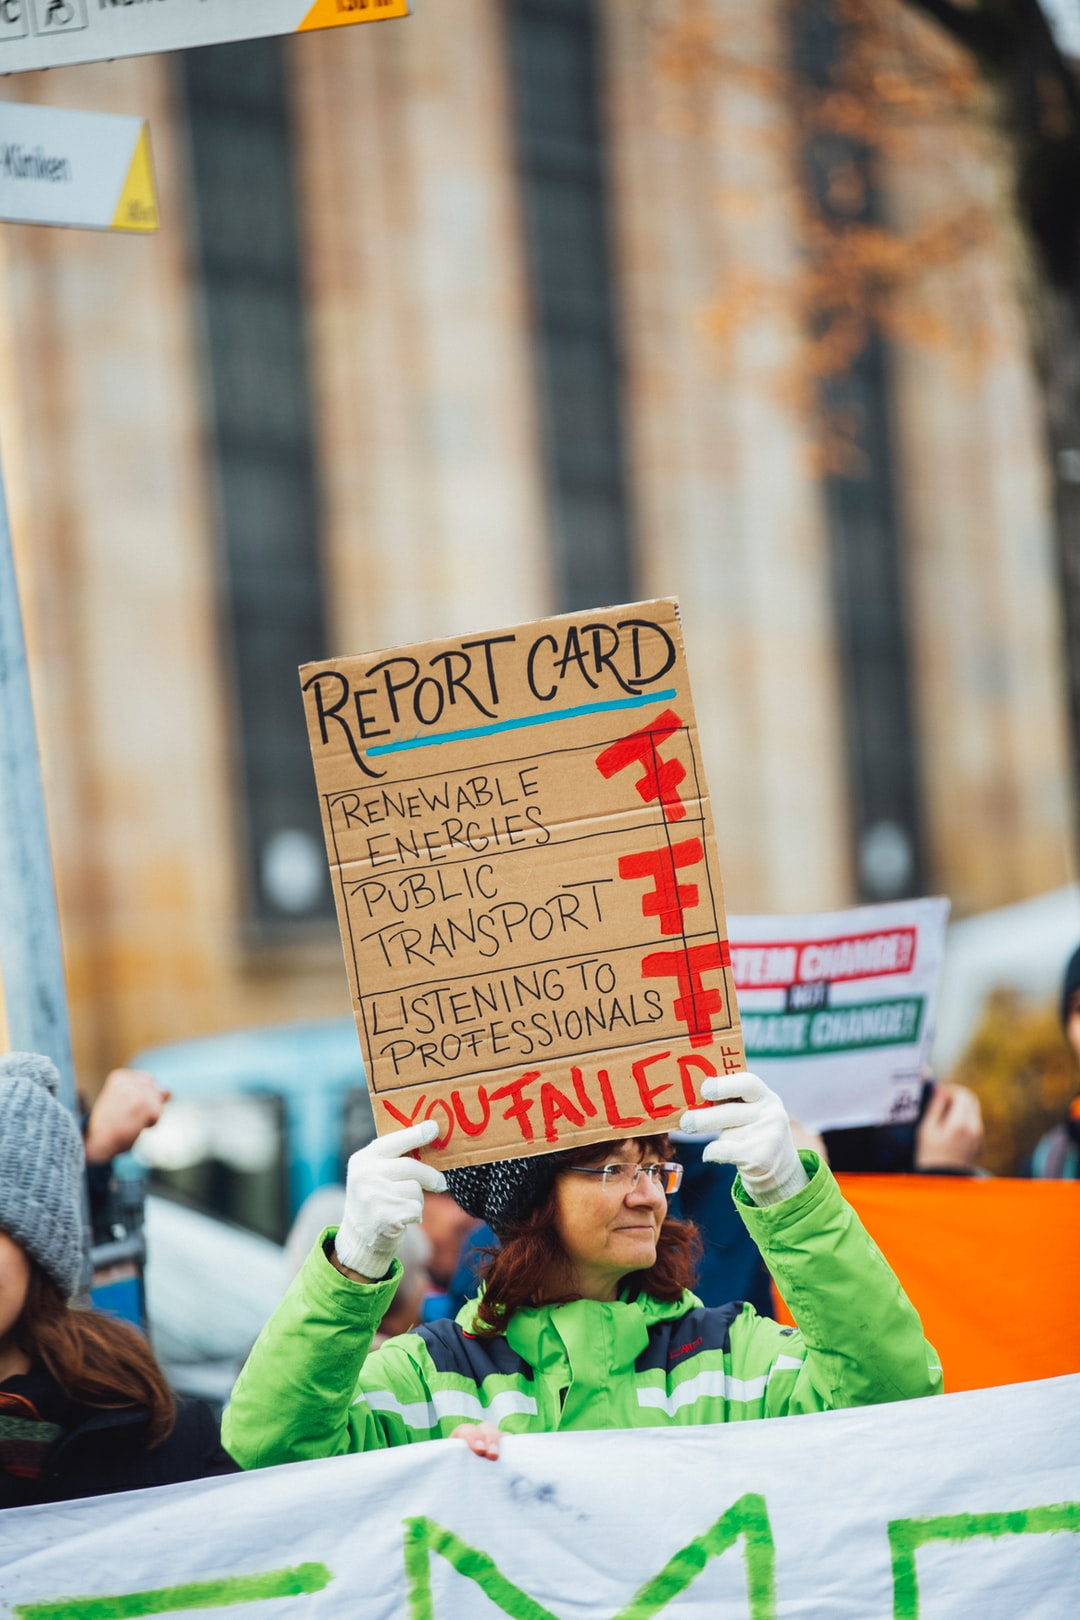 Climate strike protest demonstration – REPORT CARD: renewable engeries, public transport, listening to professionals – YOU FAILED – Fridays for future